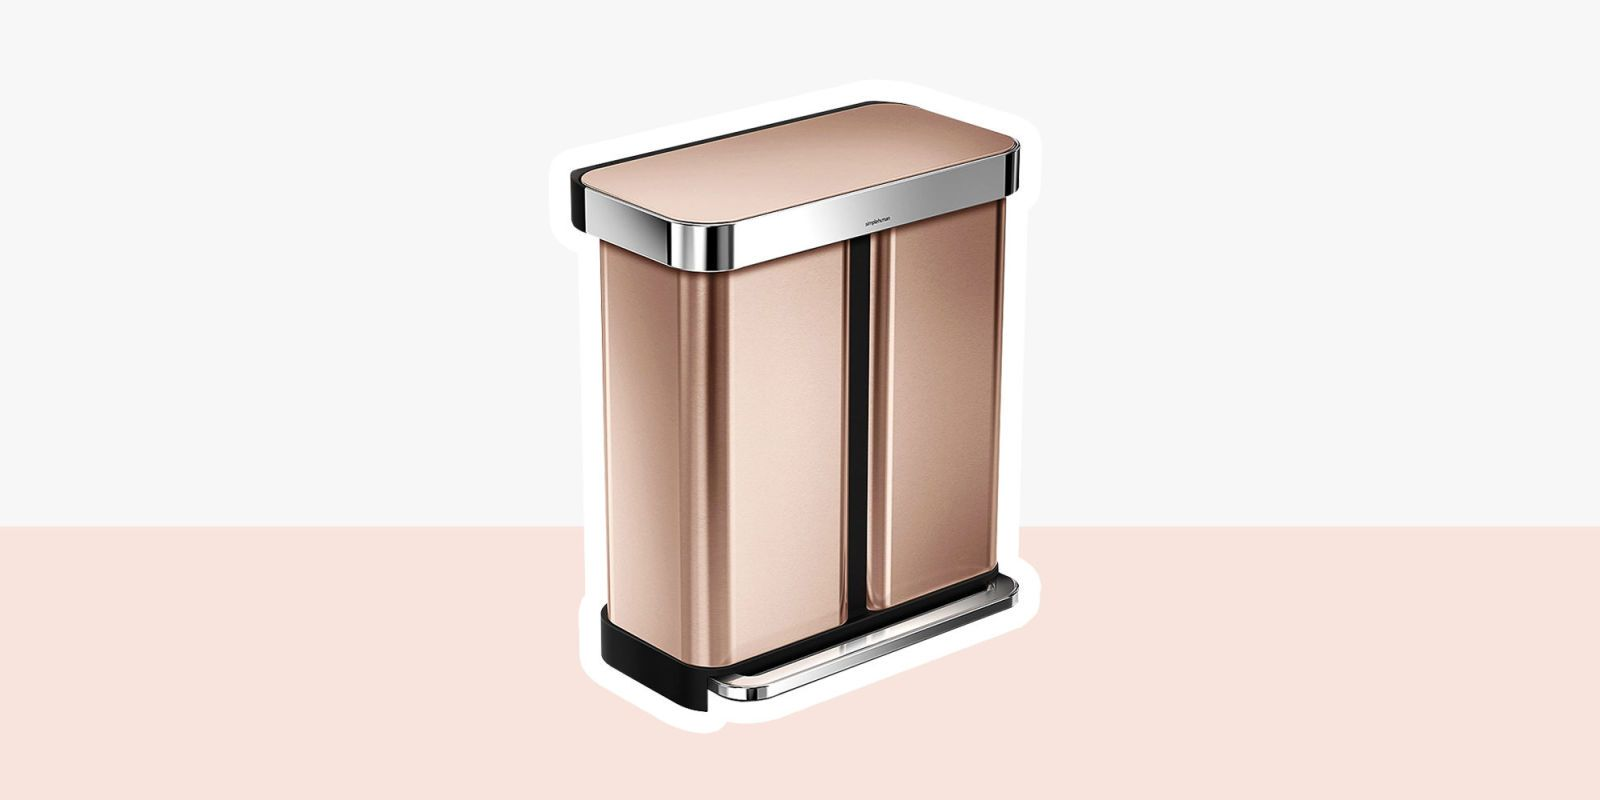 13 Cheap Stainless Steel Trash Cans 2018 Best Stainless Garbage Cans